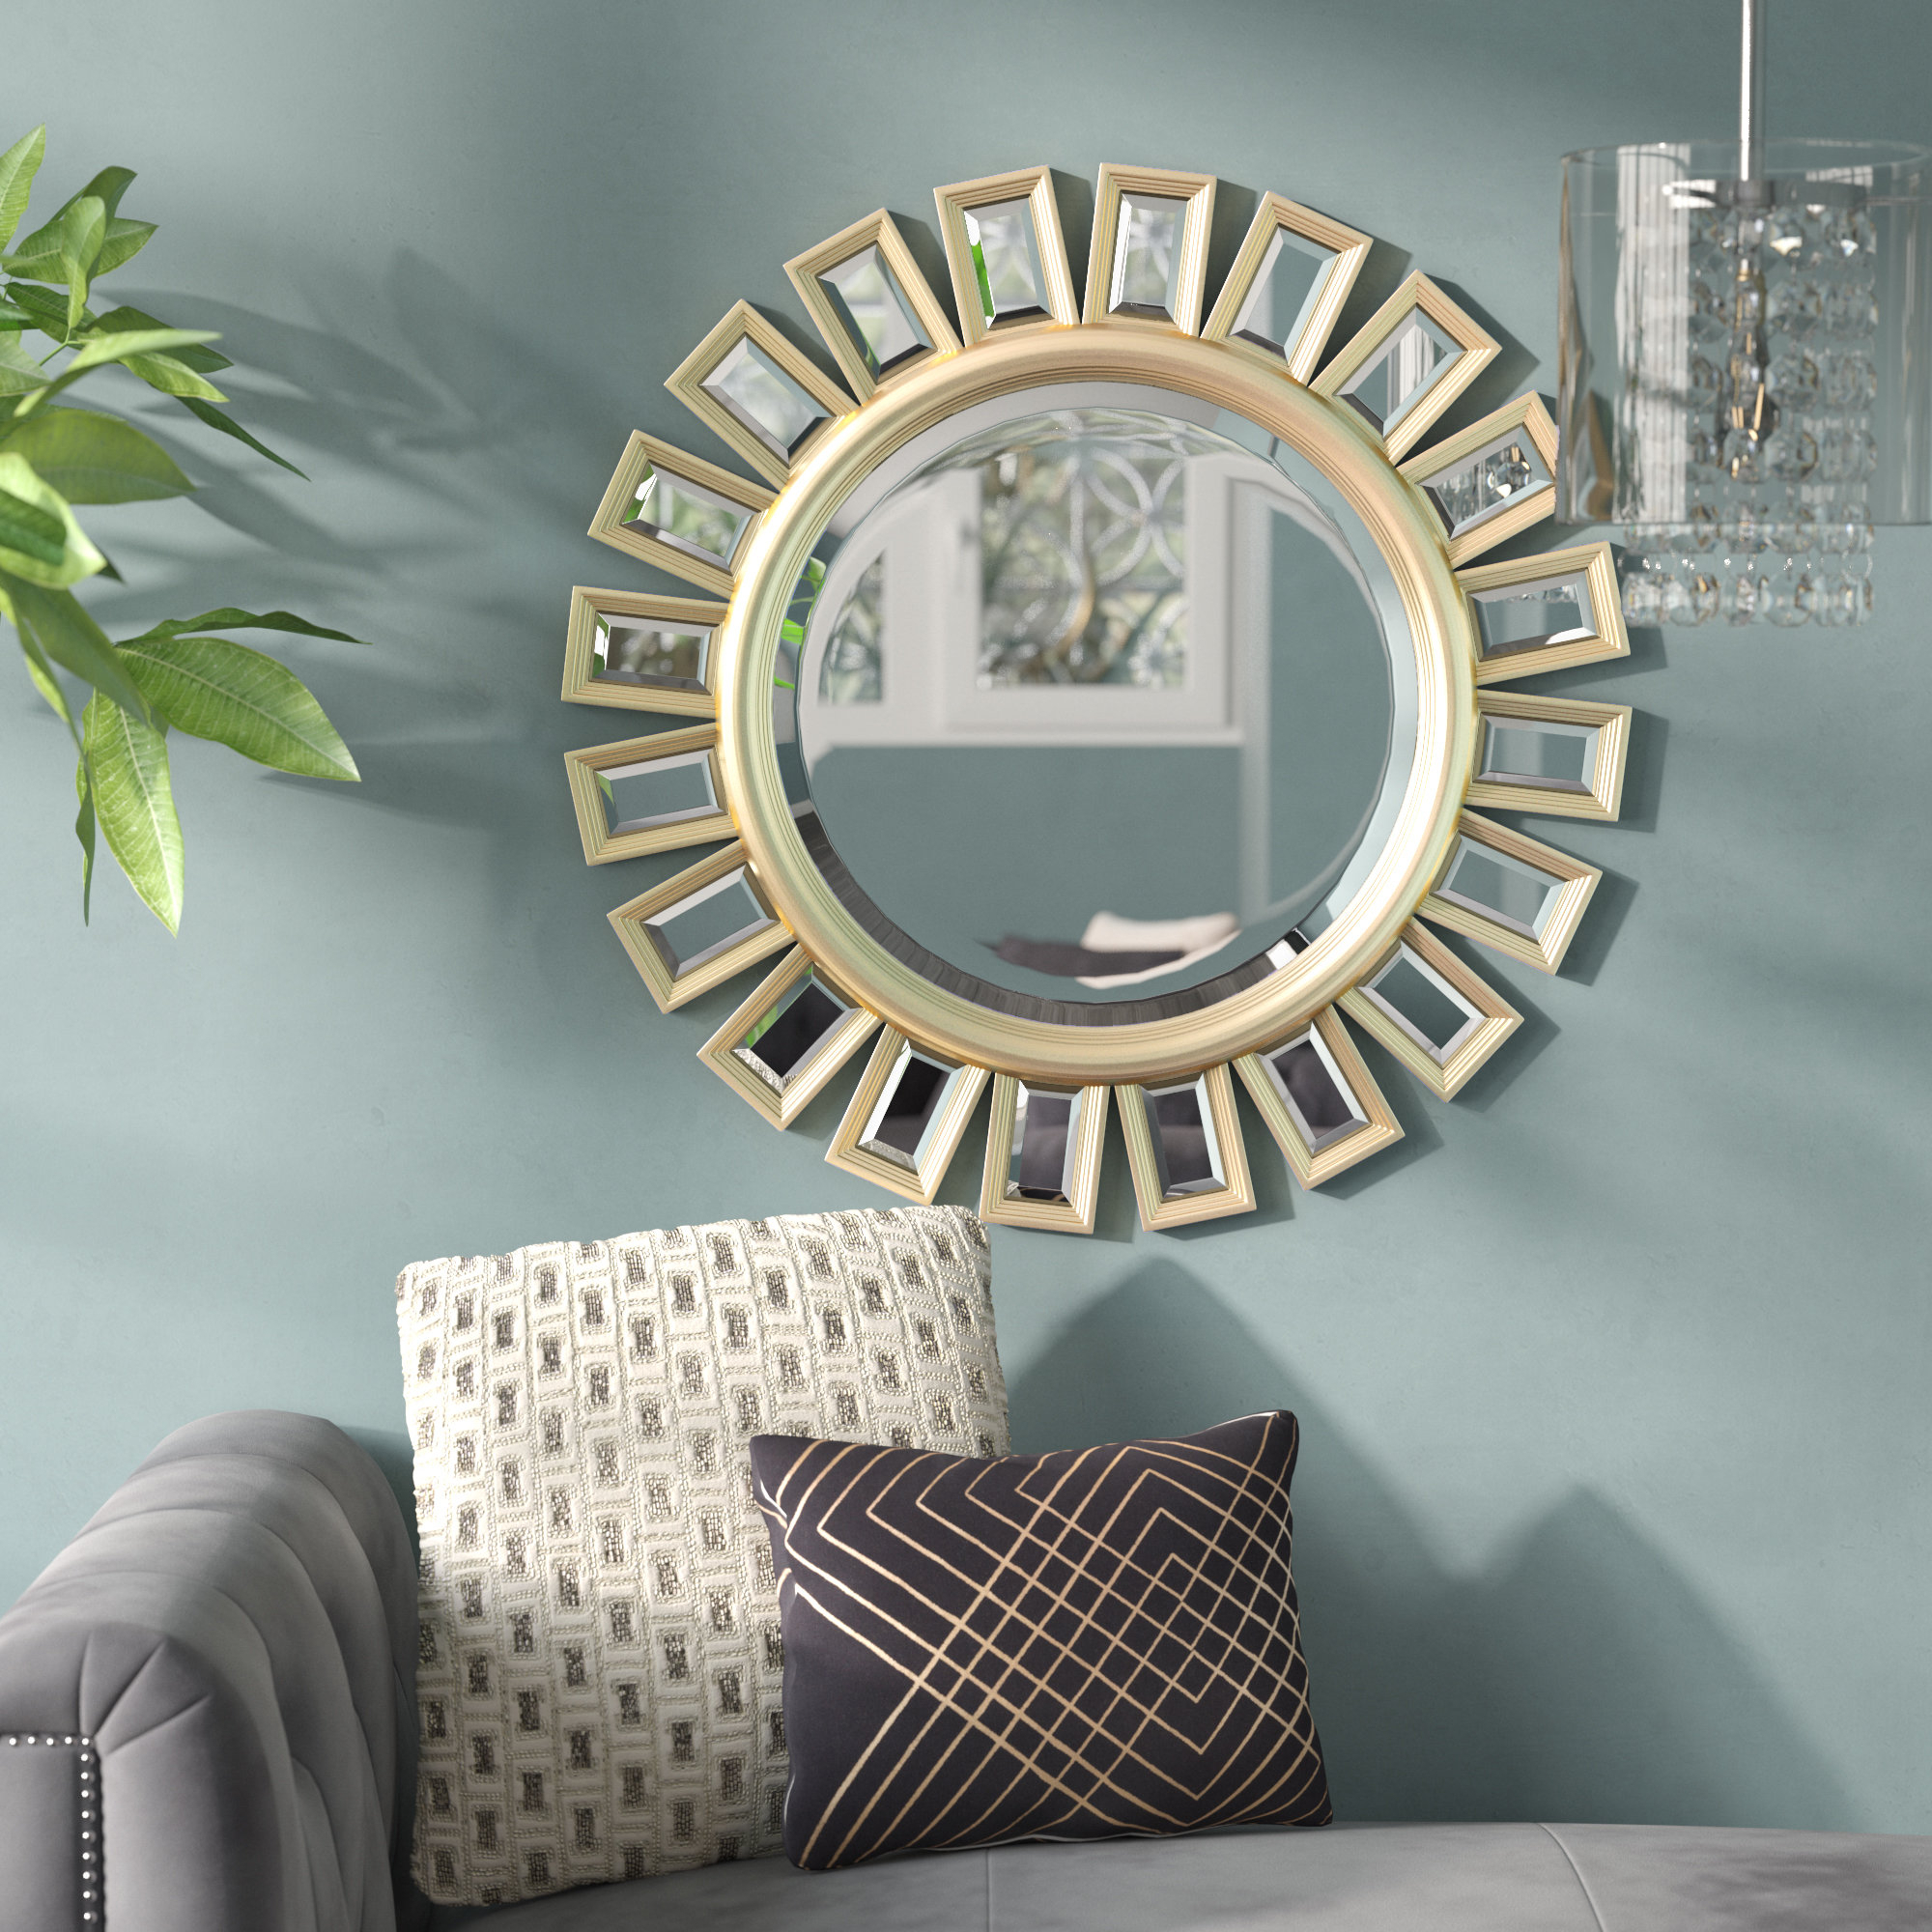 Star Burst Mirror | Wayfair Intended For Carstens Sunburst Leaves Wall Mirrors (Image 18 of 20)